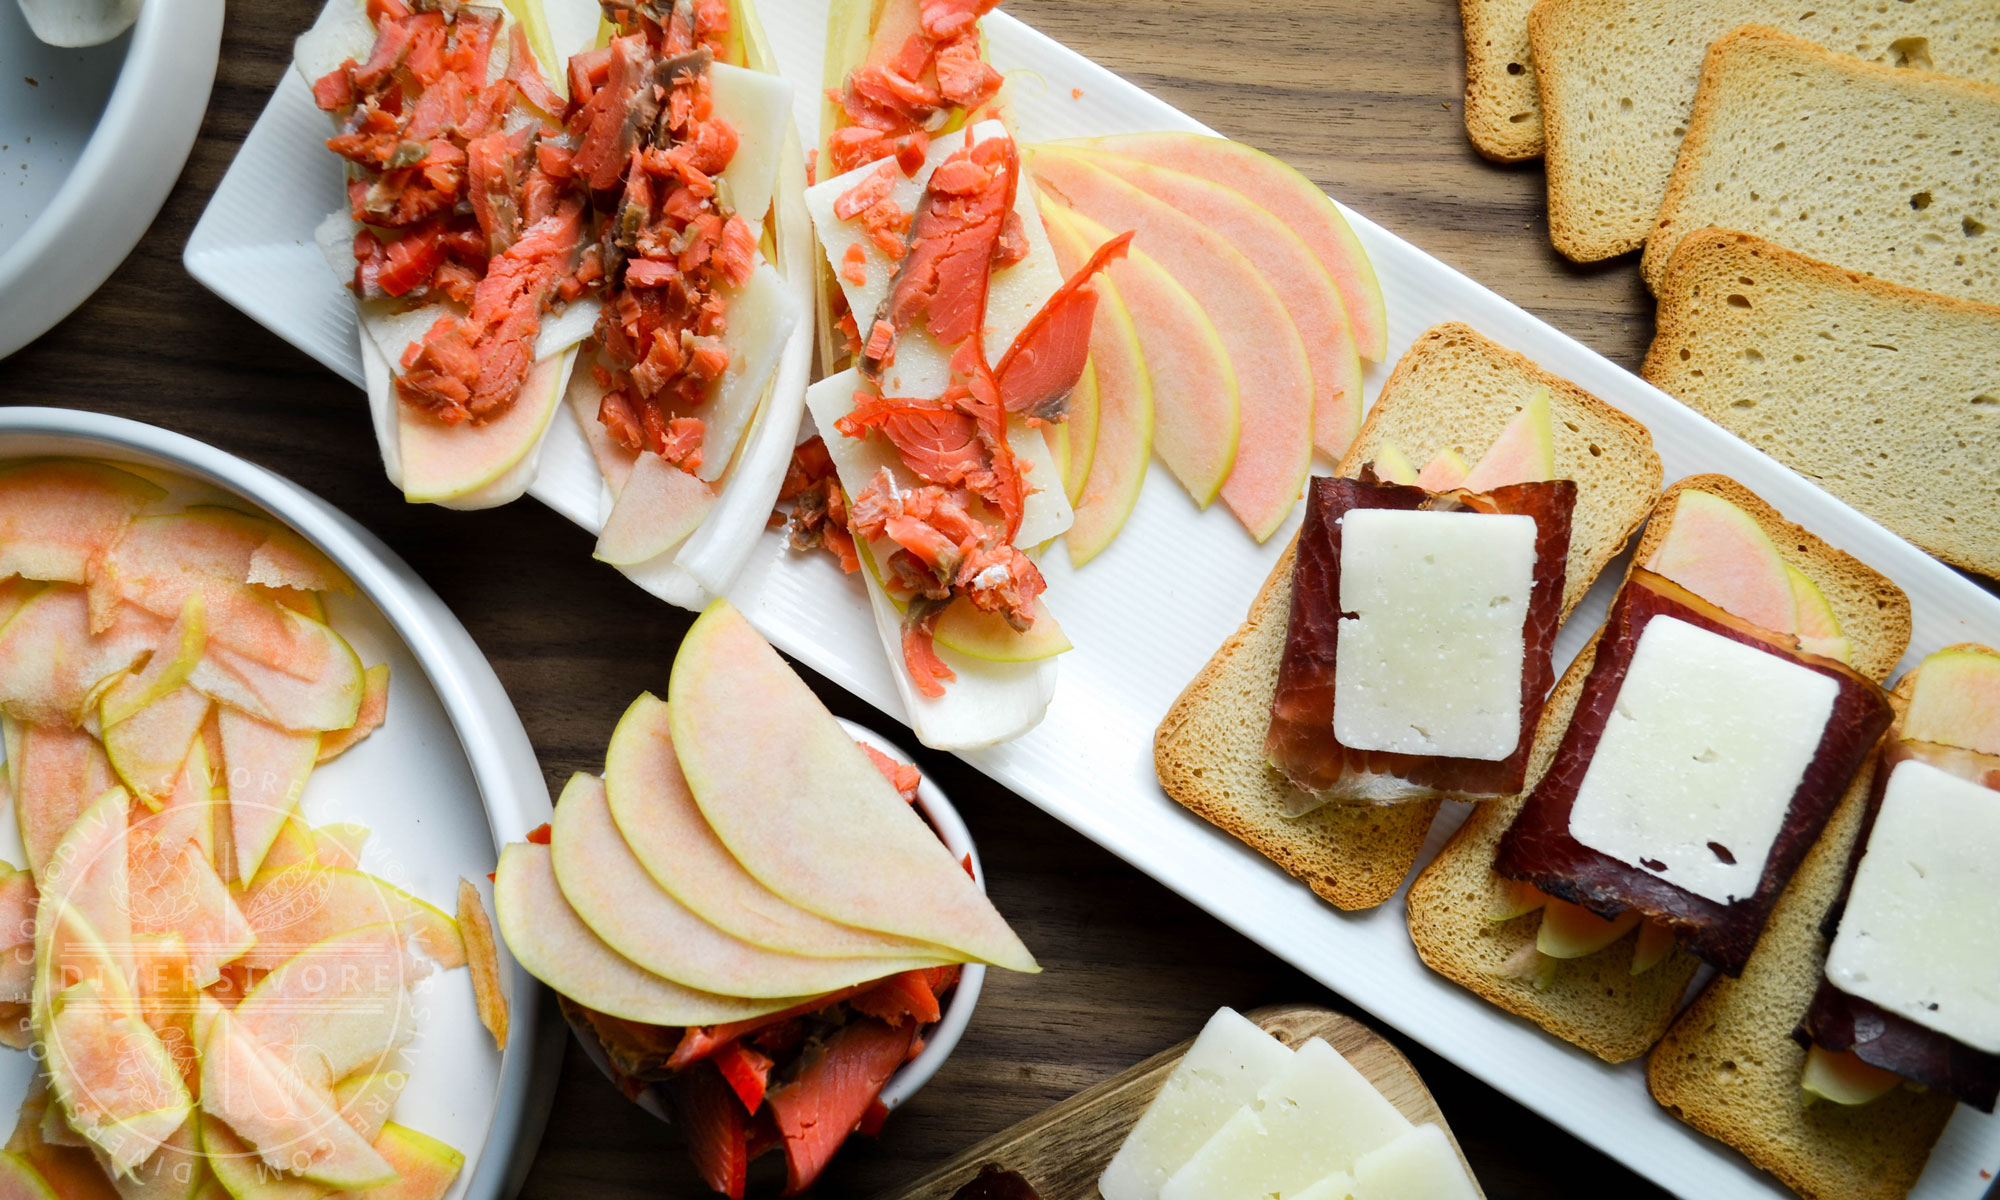 Pink Pearl apples and a charcuterie board with manchego, bison bresaola, smoked salmon, and endive - Diversivore.com